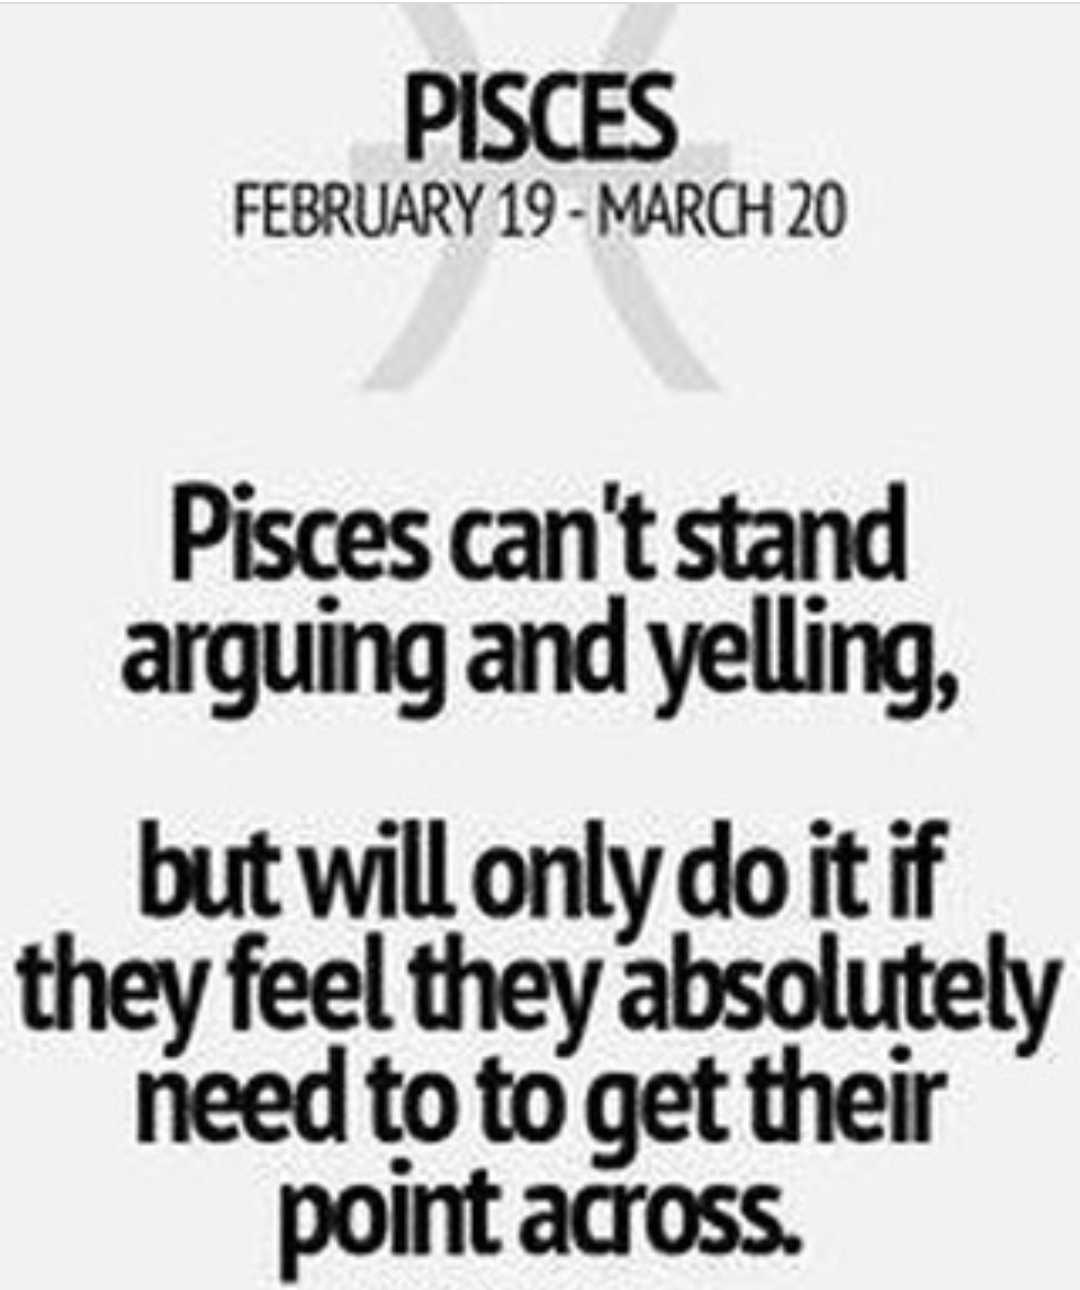 Pisces Quotes Pinlaw On Pisces  Pinterest  Pisces Zodiac And Pisces Quotes